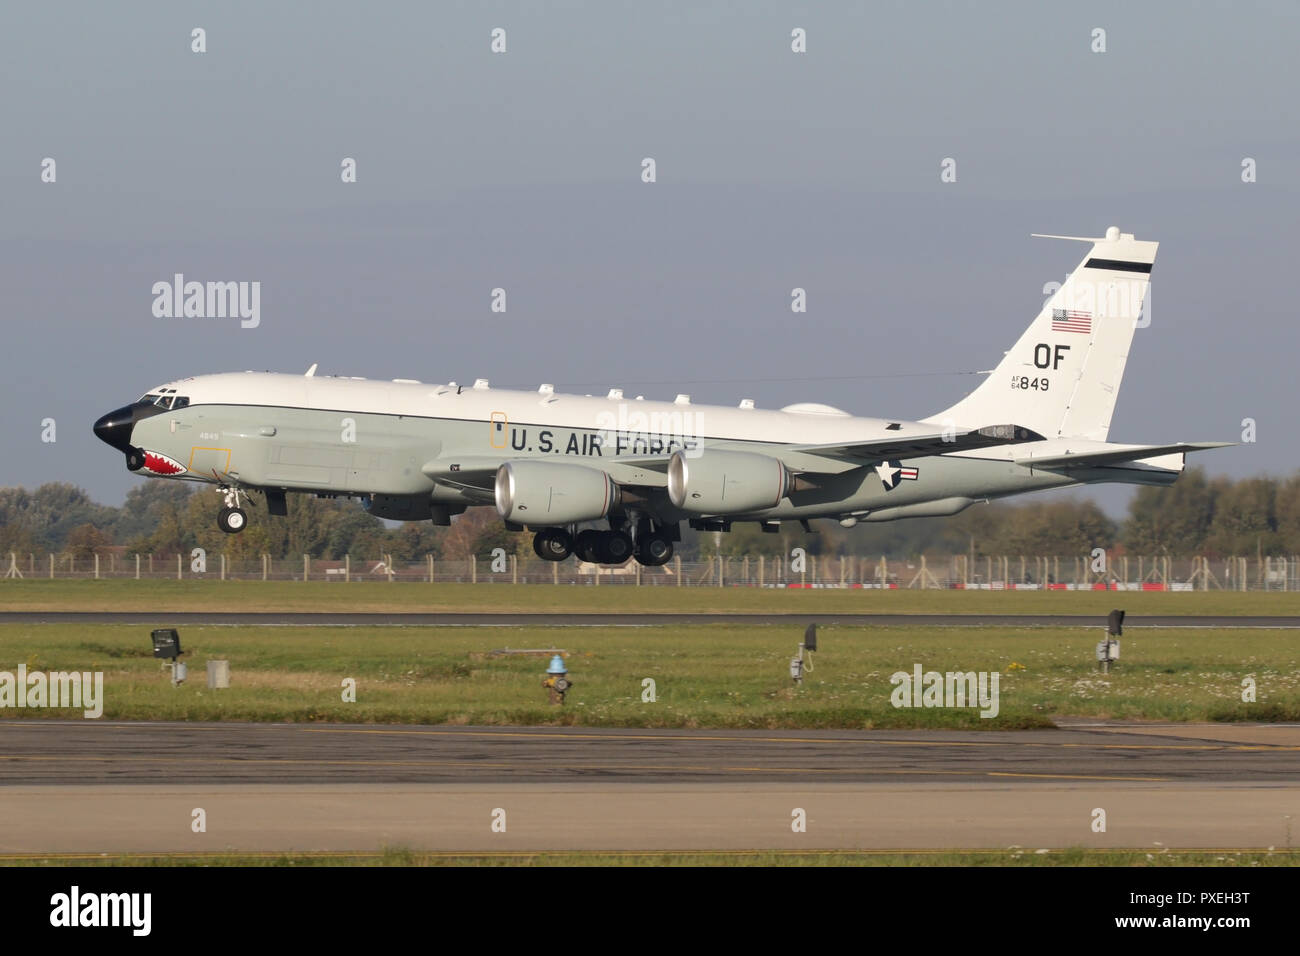 USAF RC-135U 'Combat Sent', one of only two in the USAF inventory on the approach into RAF Mildenhall after a surveillance mission. - Stock Image